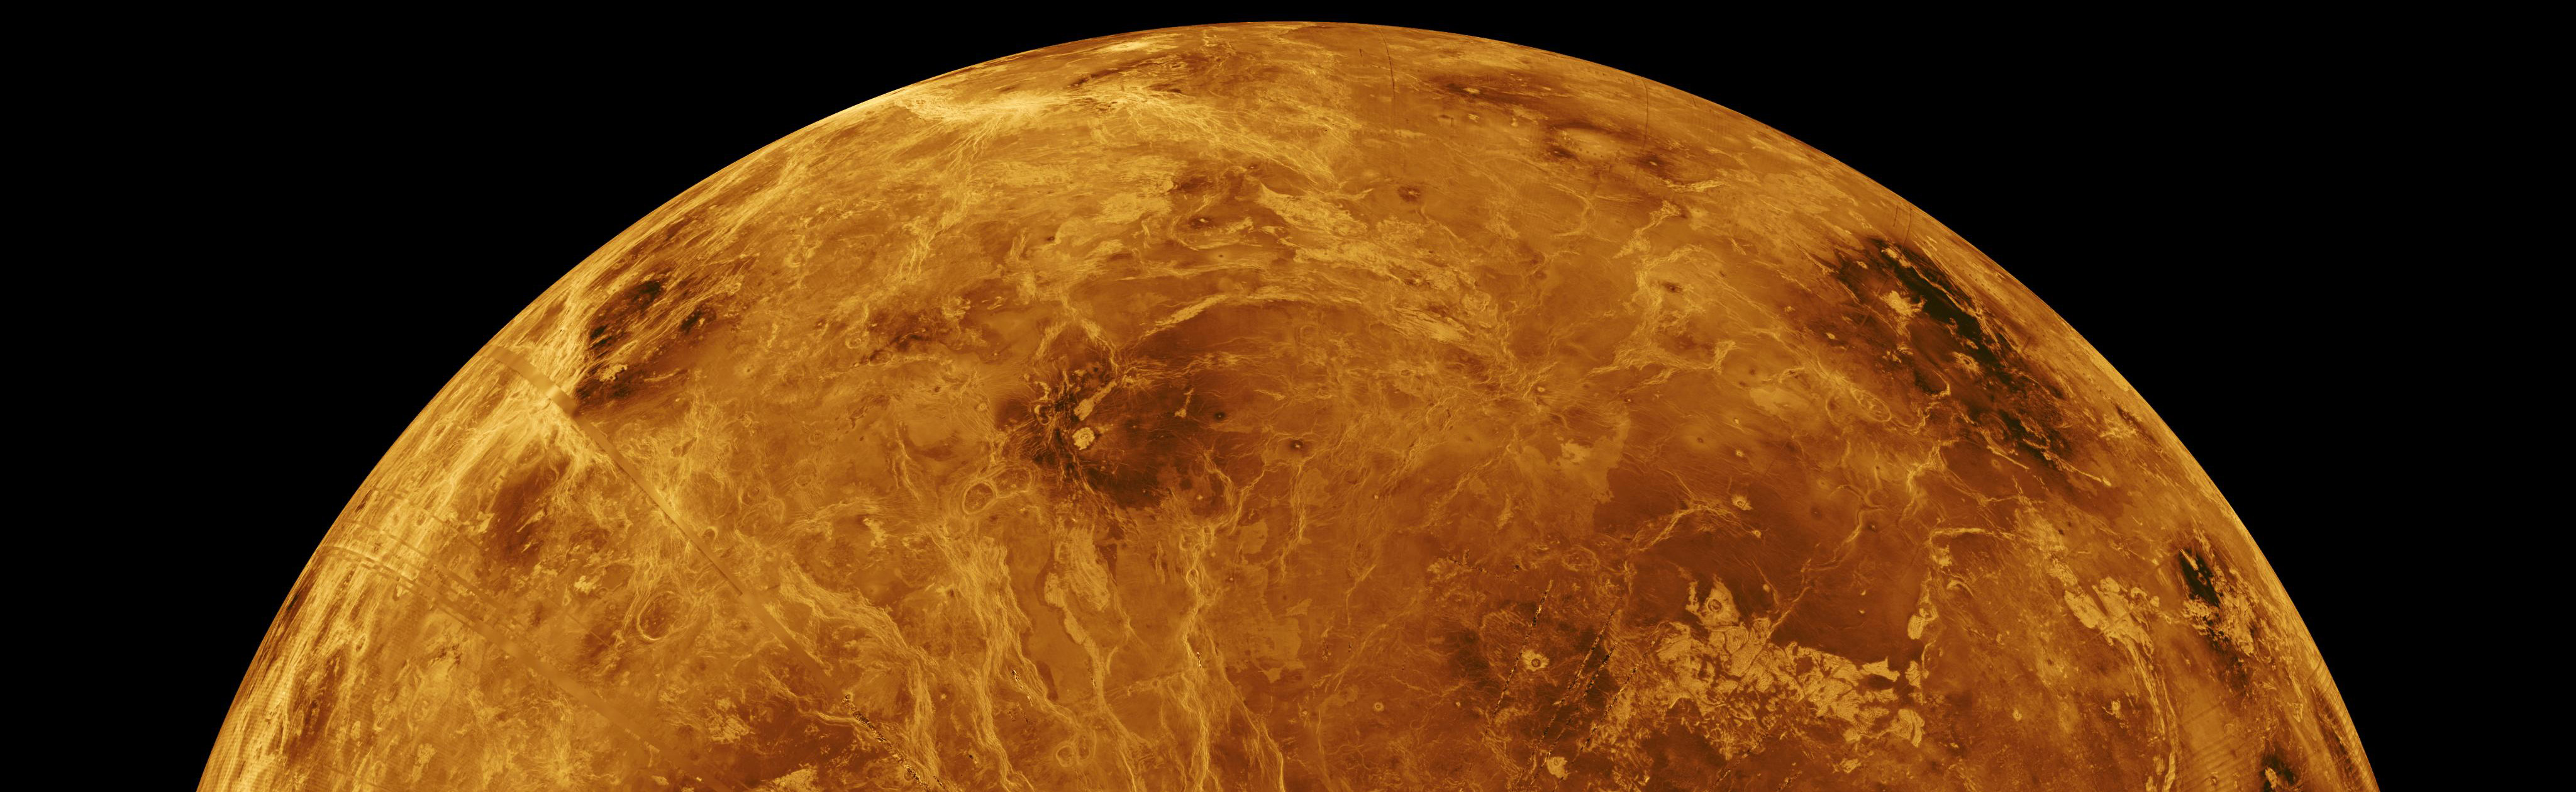 Electronics that can operate on Venus: how to create it?